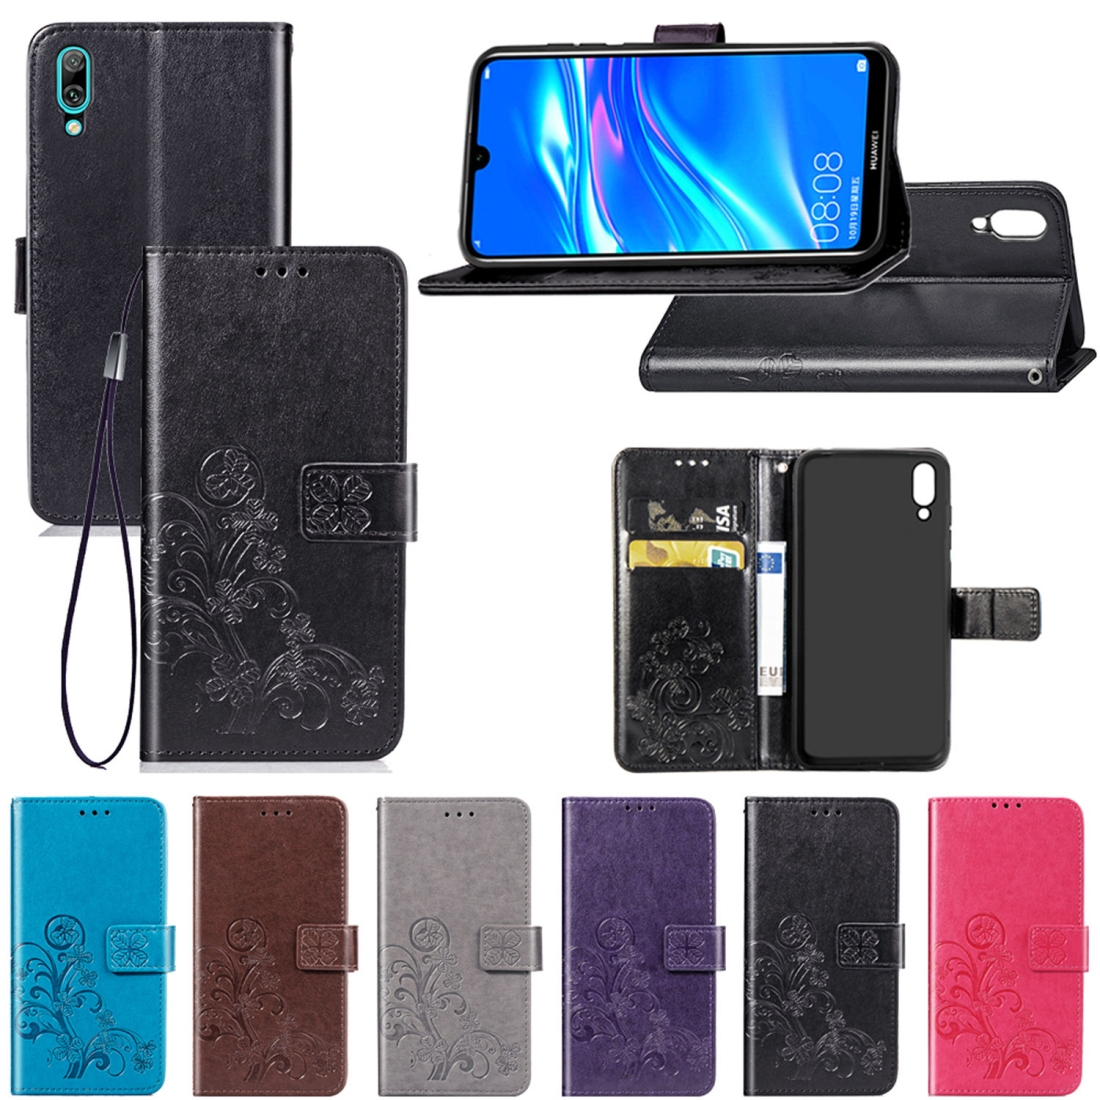 Lucky Clover Pressed Flowers Pattern Leather Case for Huawei Enjoy 9 with Holder & Card Slots & Wallet & Hand Strap (Black)